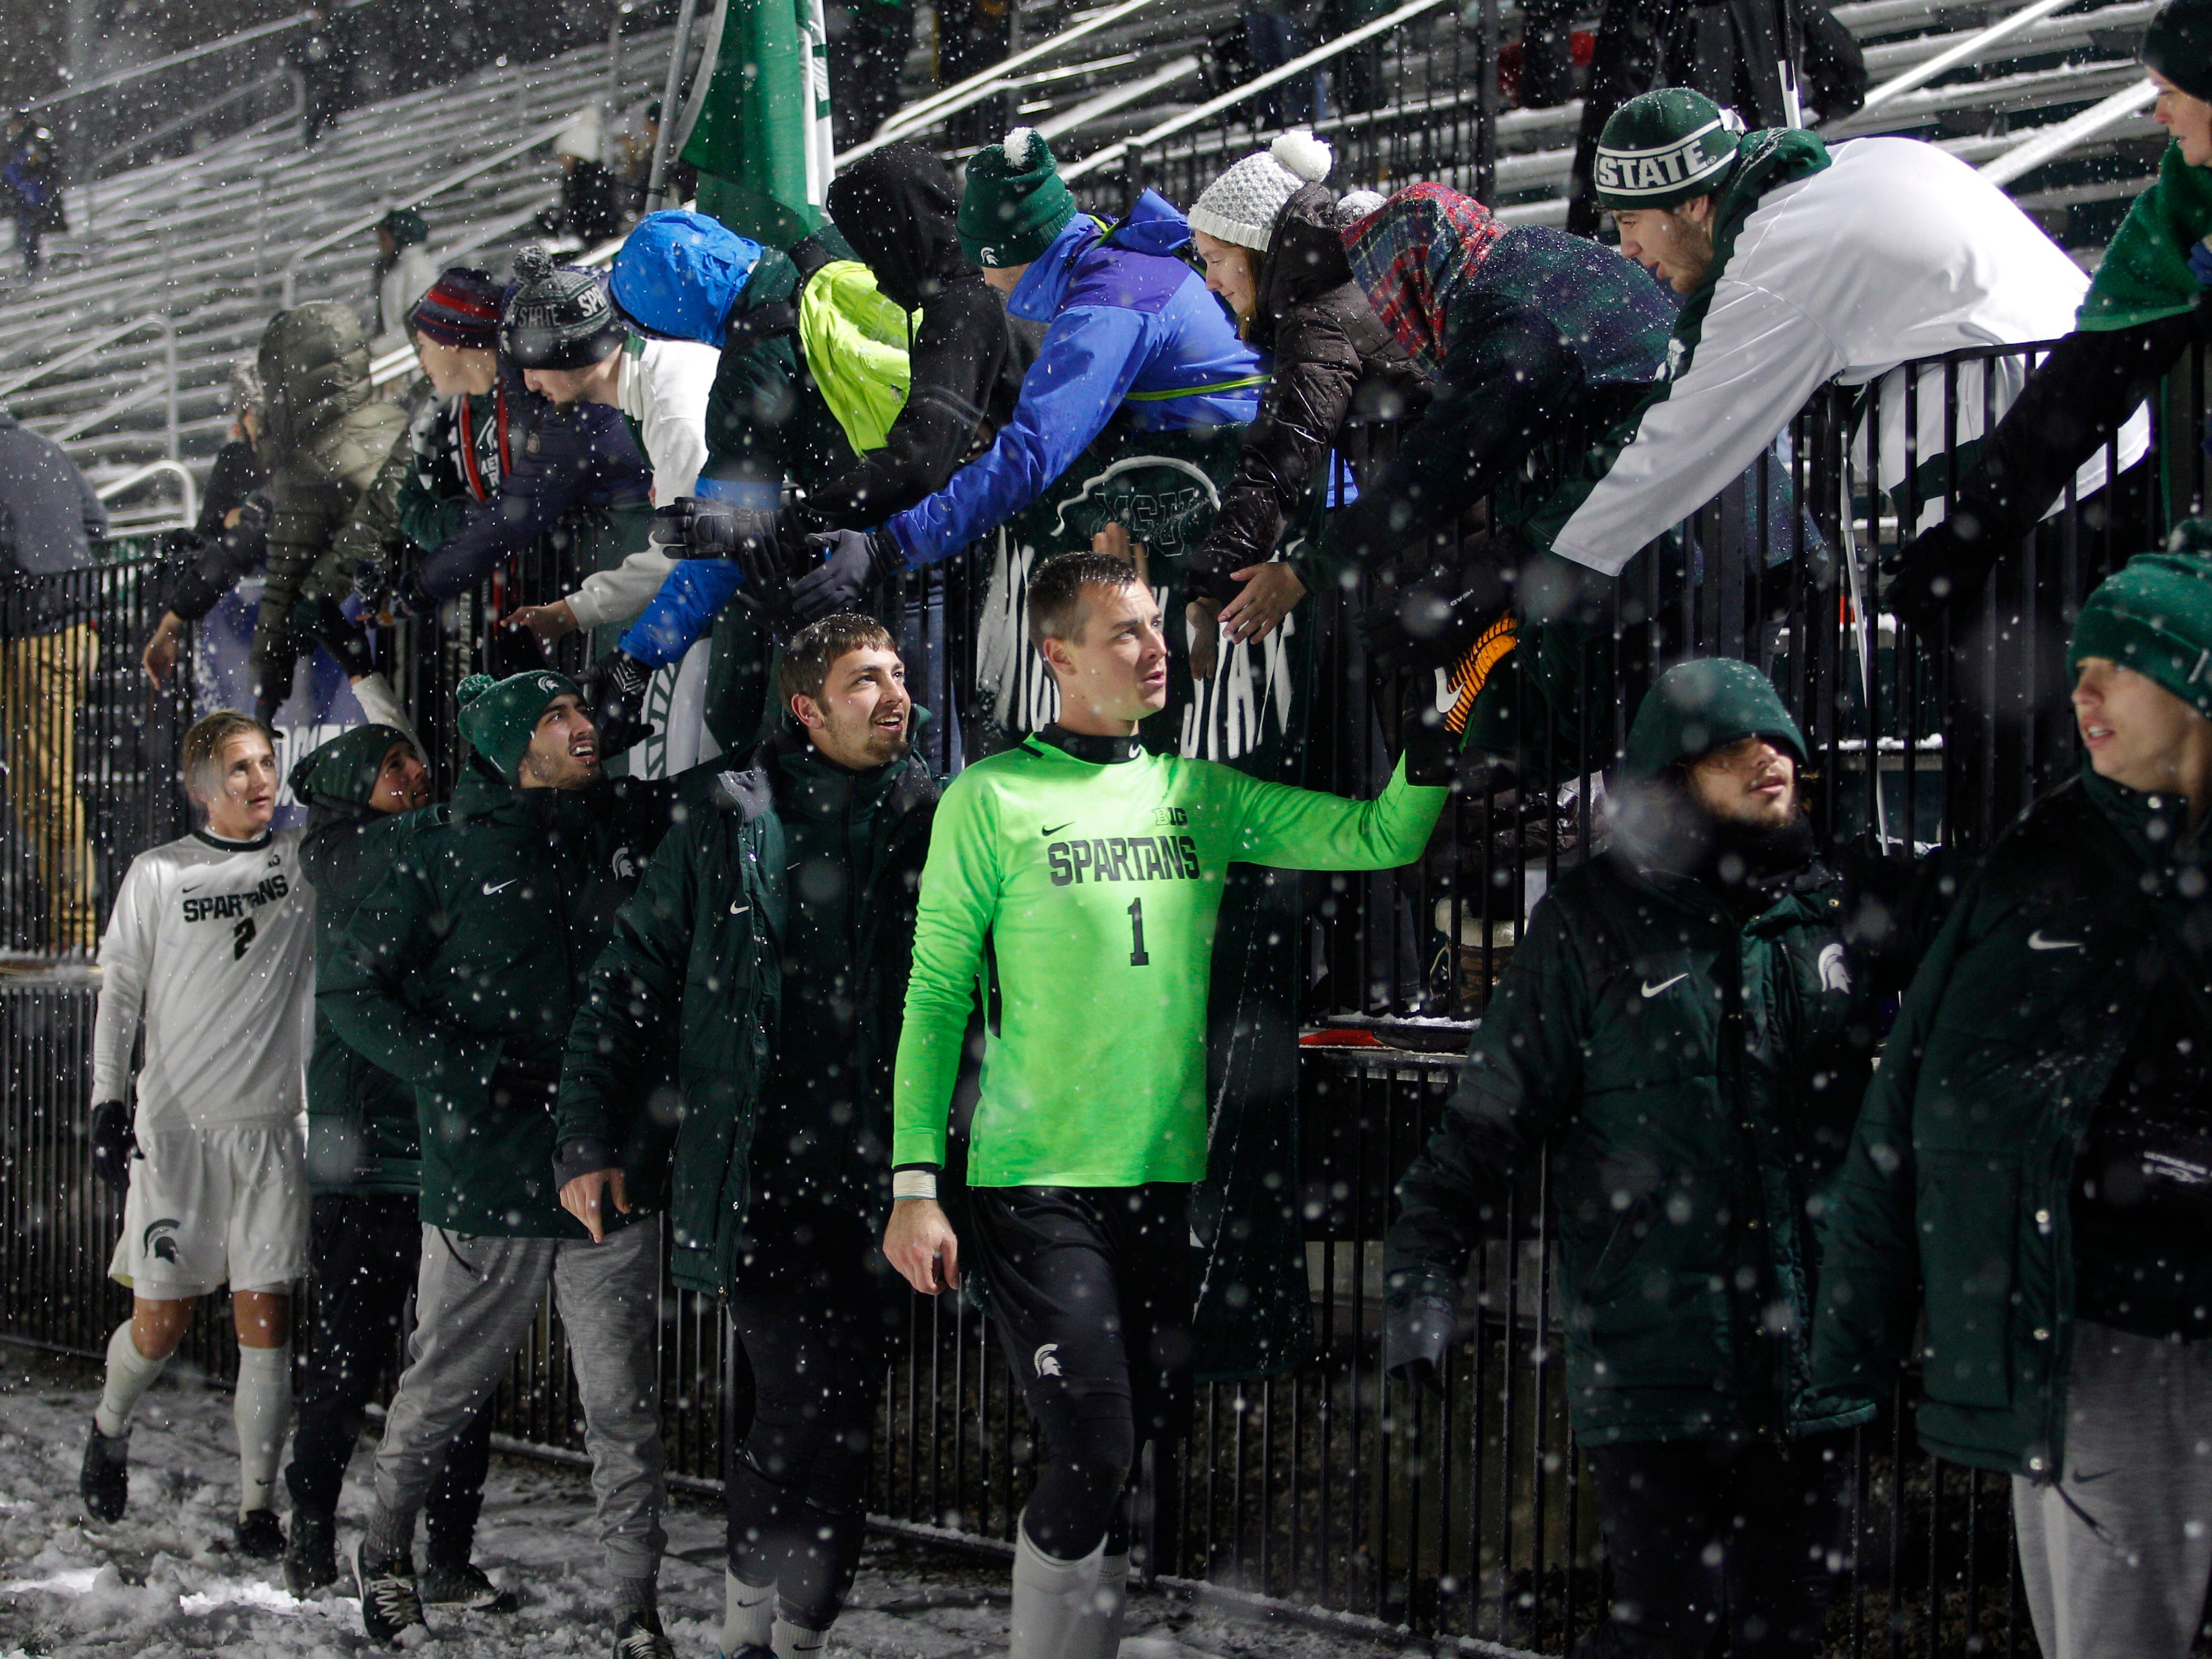 Michigan State players, including goalkeeper Jimmy Hague (1) greet fans following a 2-0 win over Illinois-Chicago in their NCAA first round game, Thursday, Nov. 15, 2018, at DeMartin Stadium in East Lansing, Mich. MSU won 2-0.